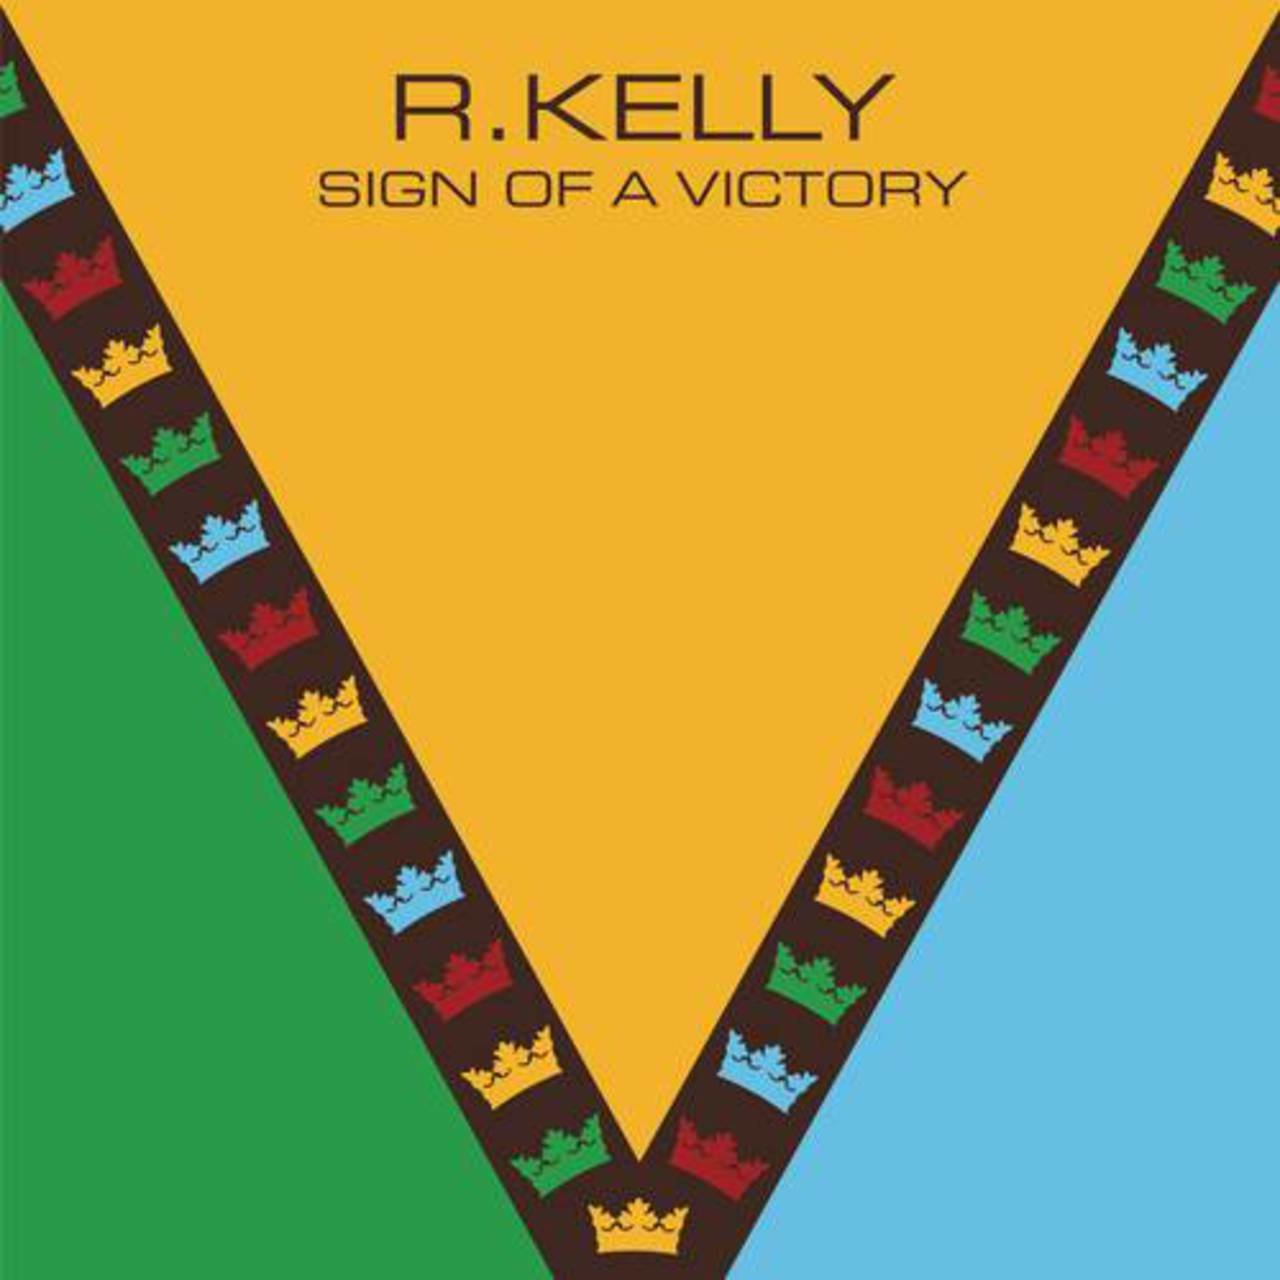 R. Kelly - Sign Of A Victory (ft. Soweto Spiritual Singers)